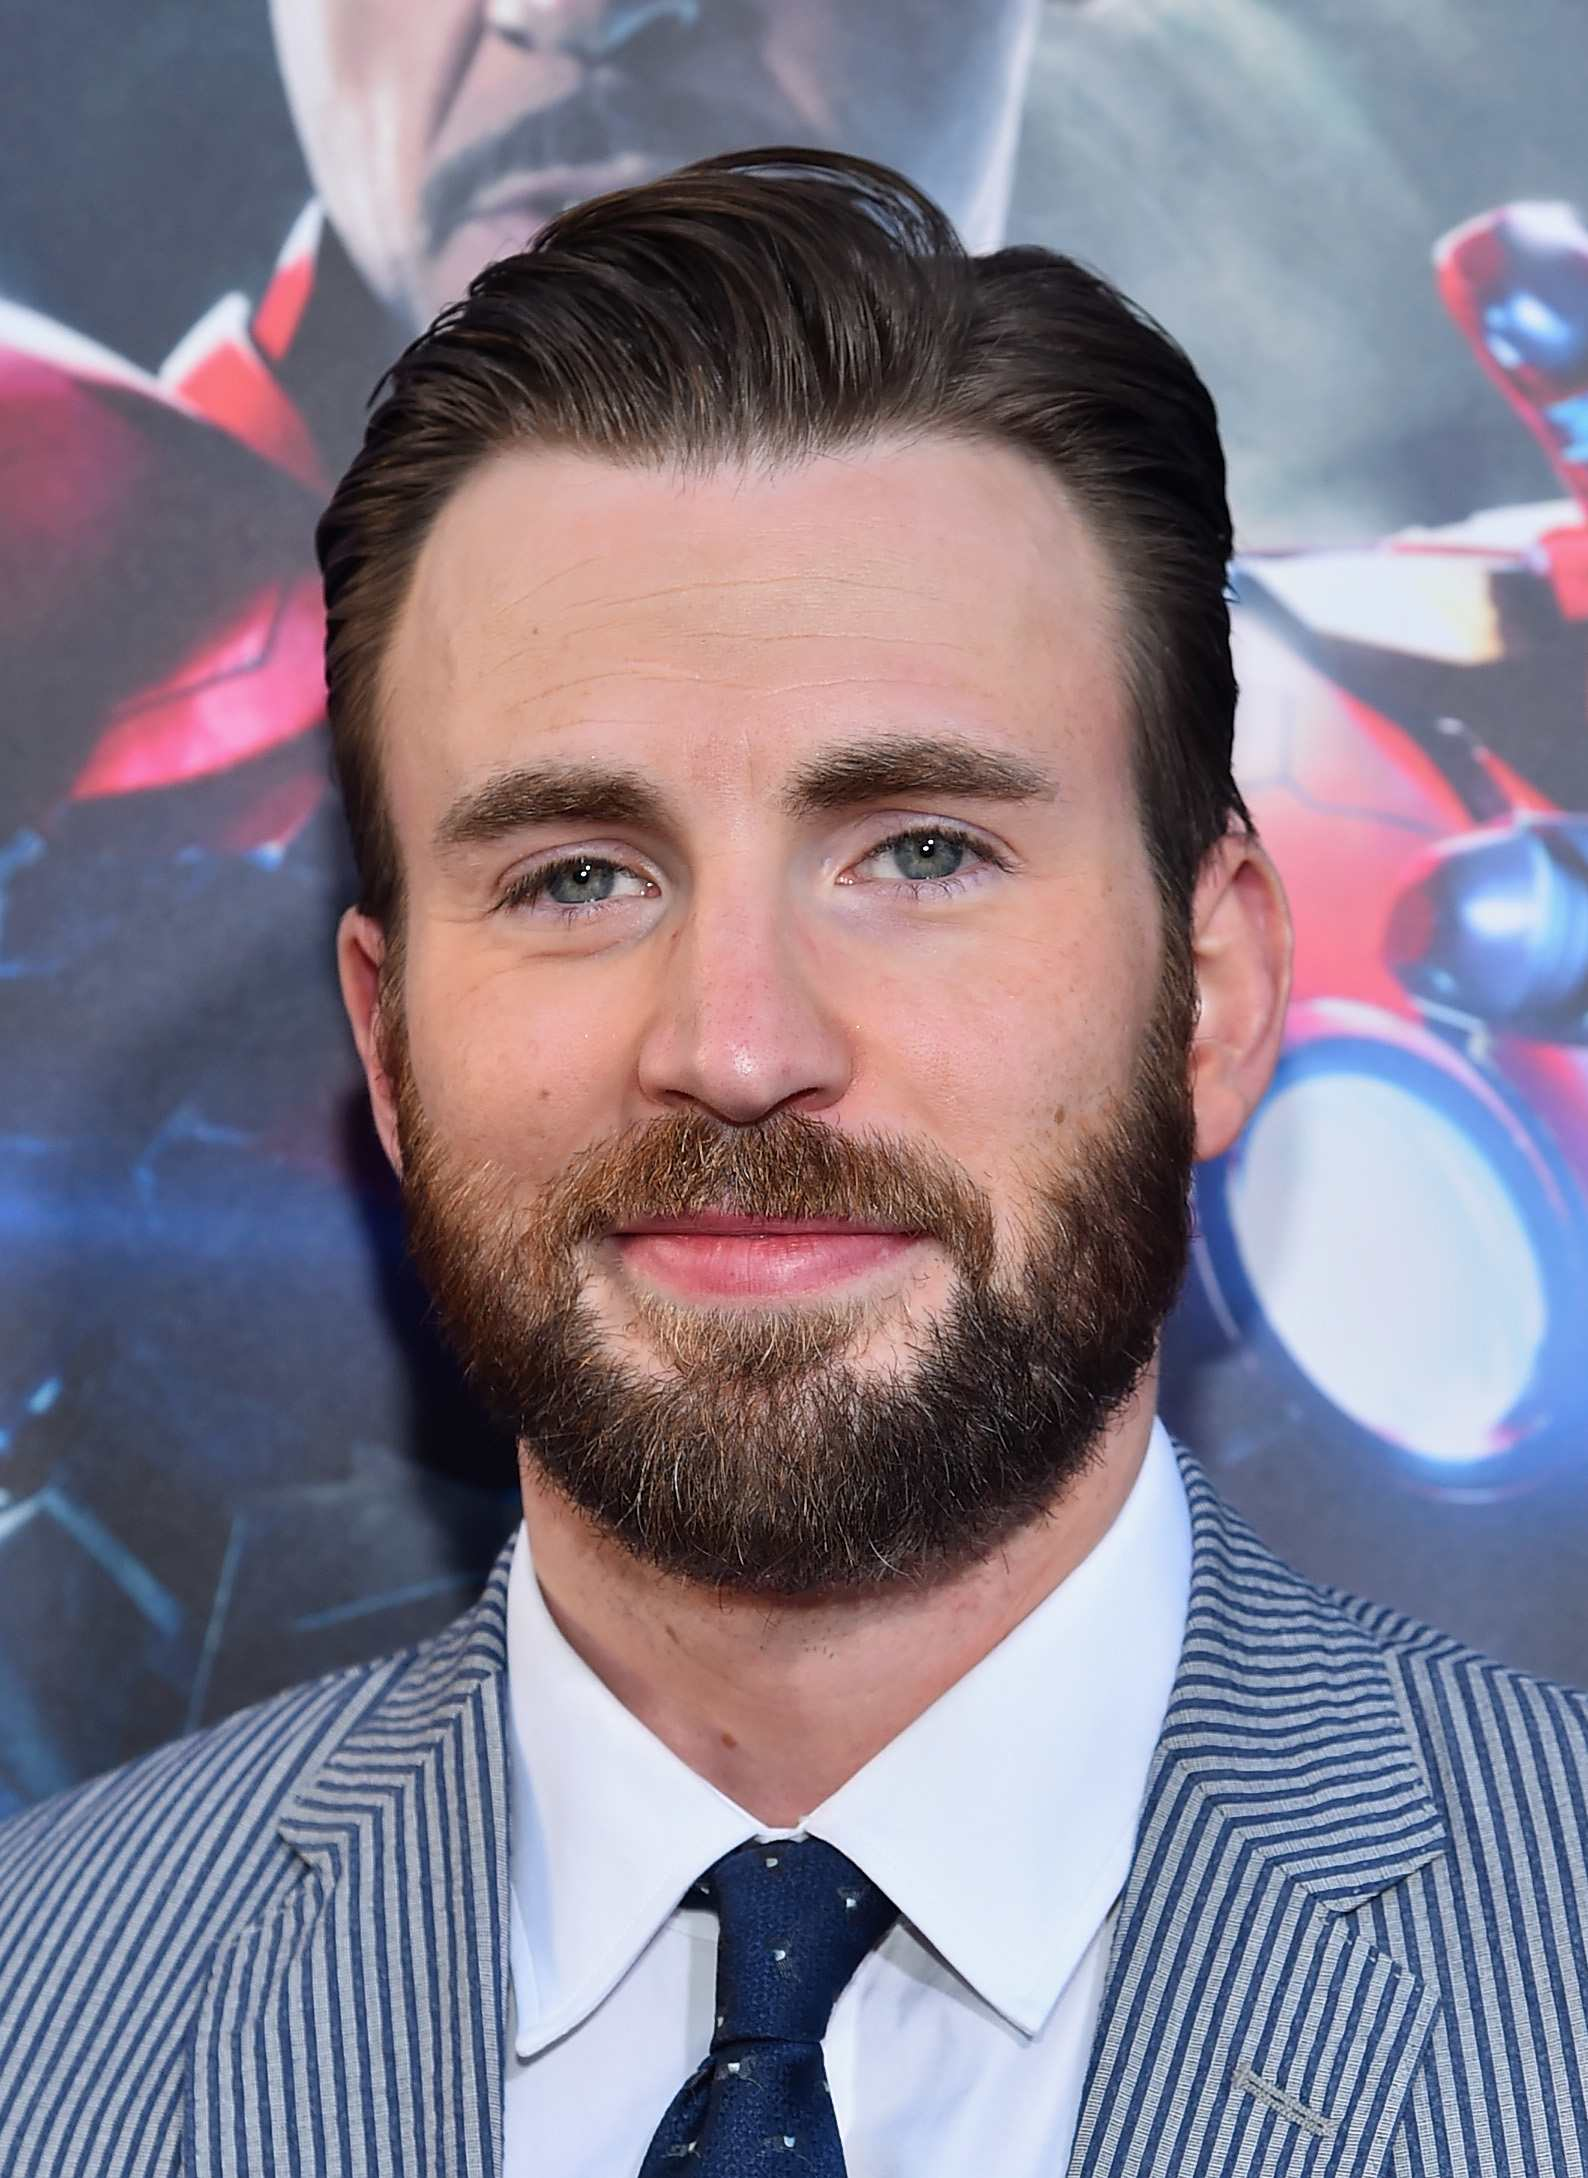 Top 12 hottest celebs with beards - The Fuss